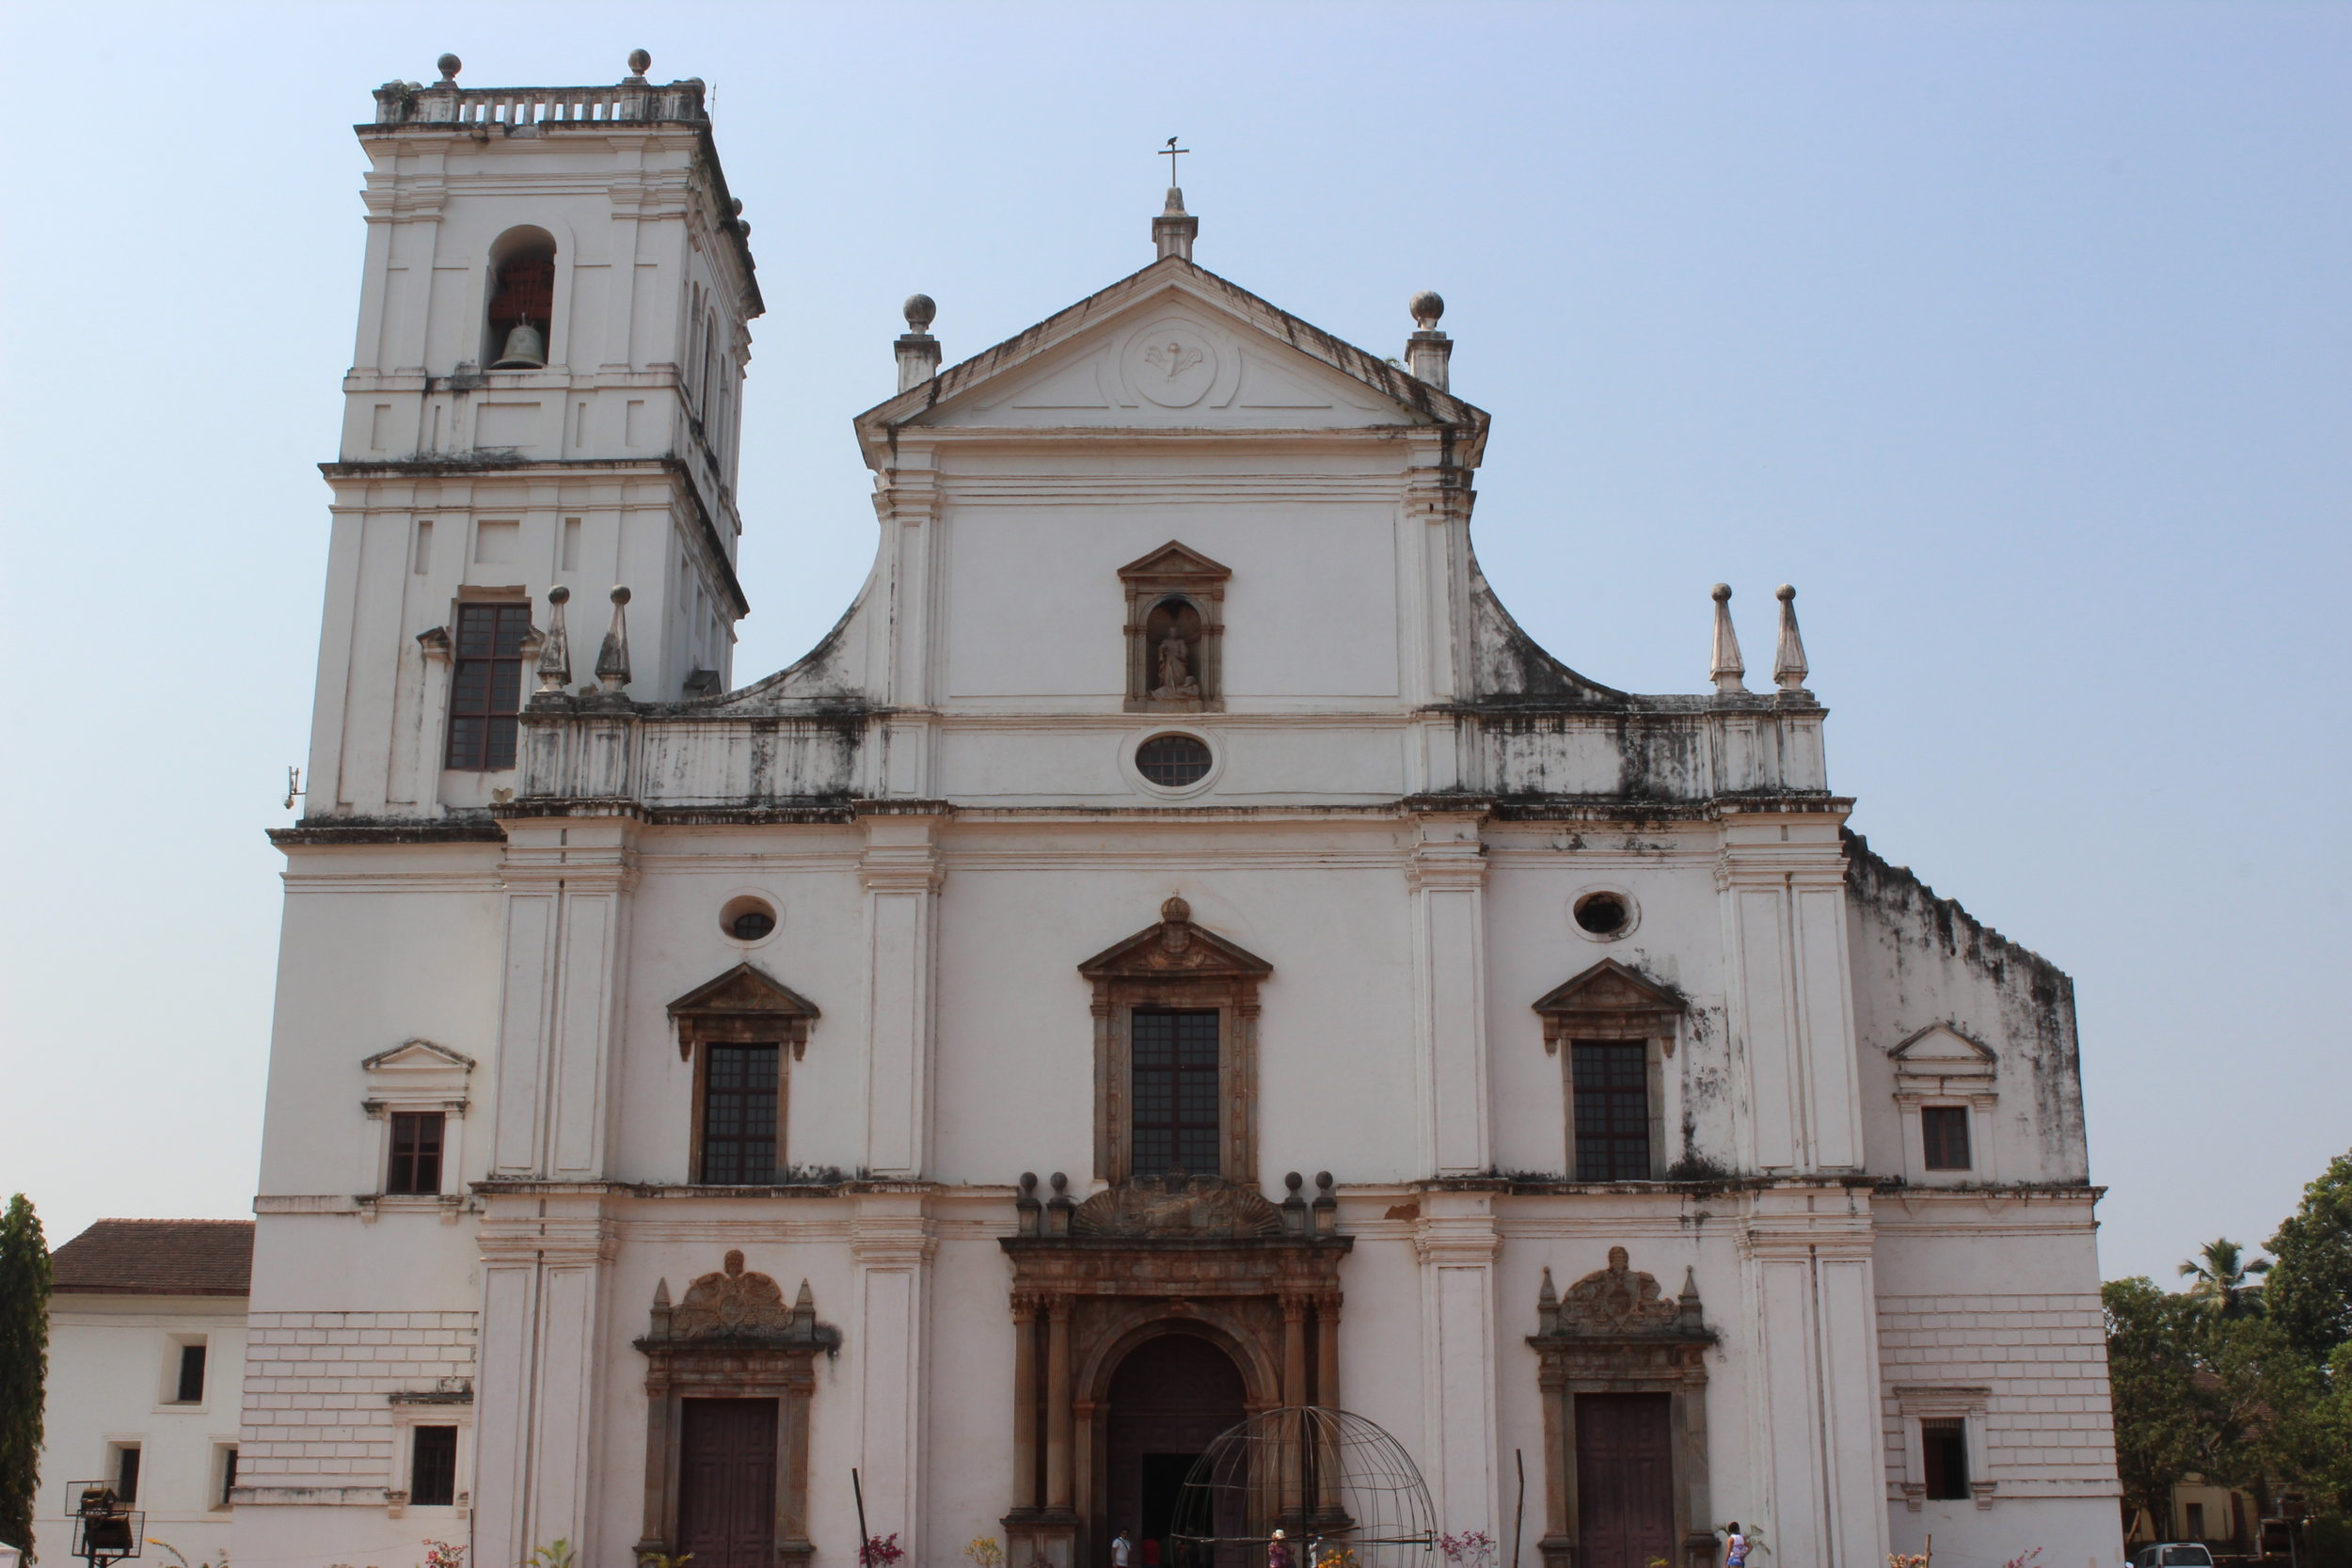 A 16th century church in the heart of Old Goa.